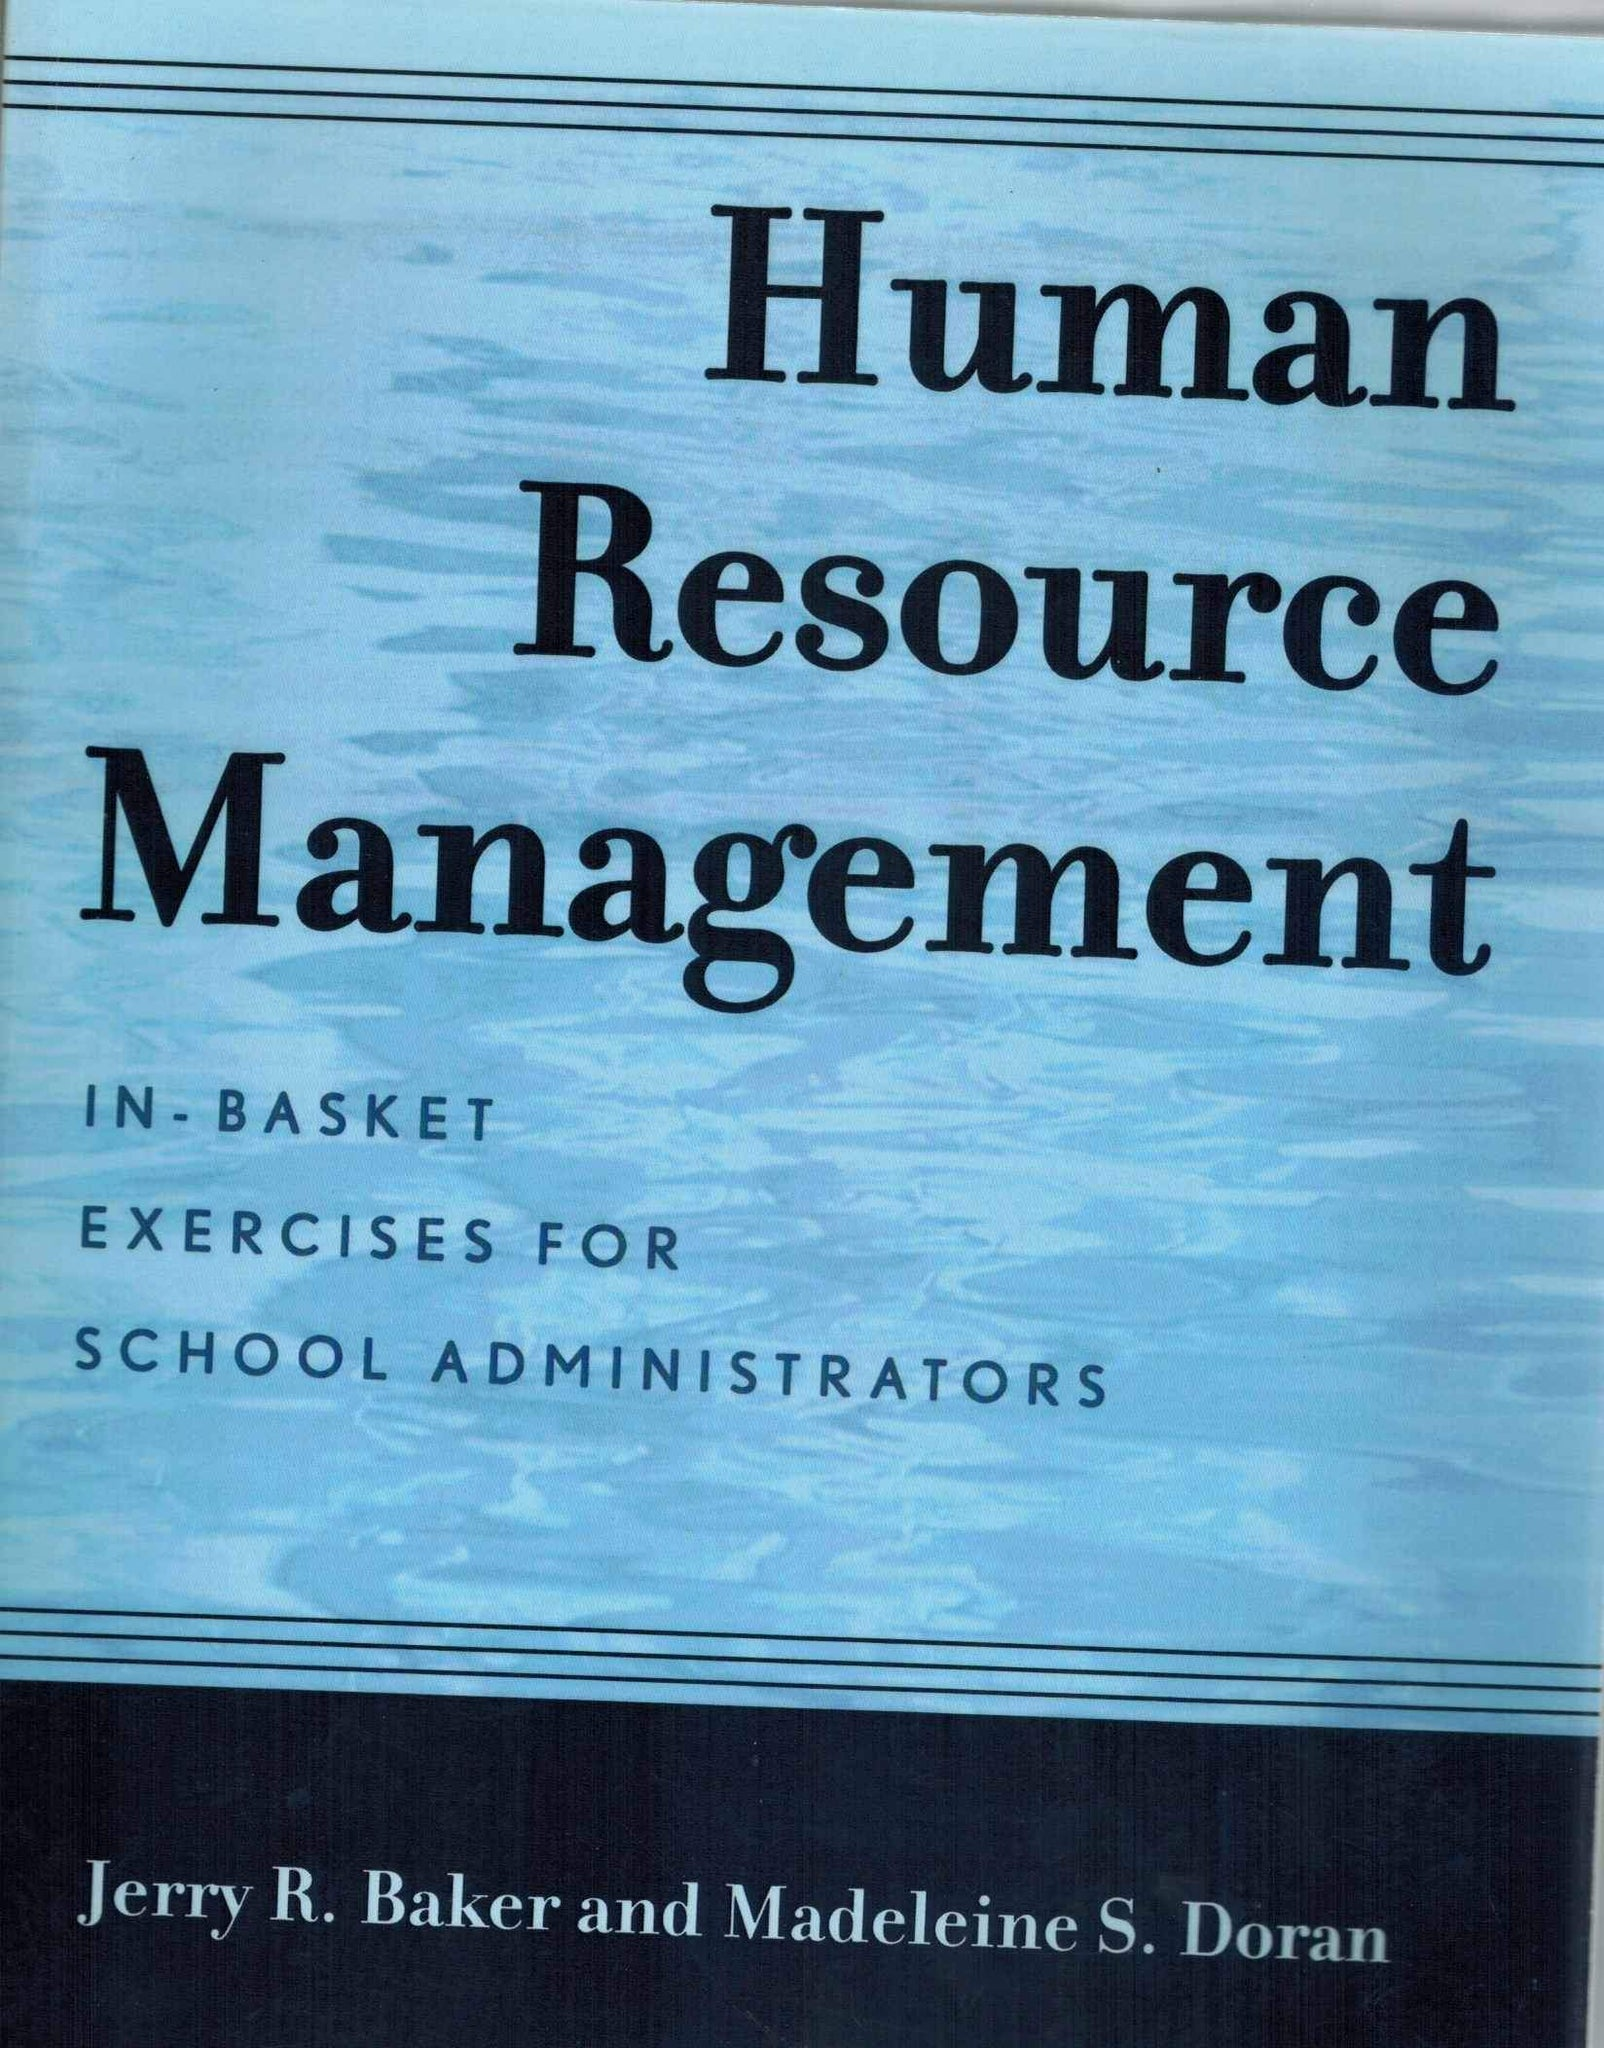 Human Resource Management  In-Basket Exercises for School Administrators - books-new